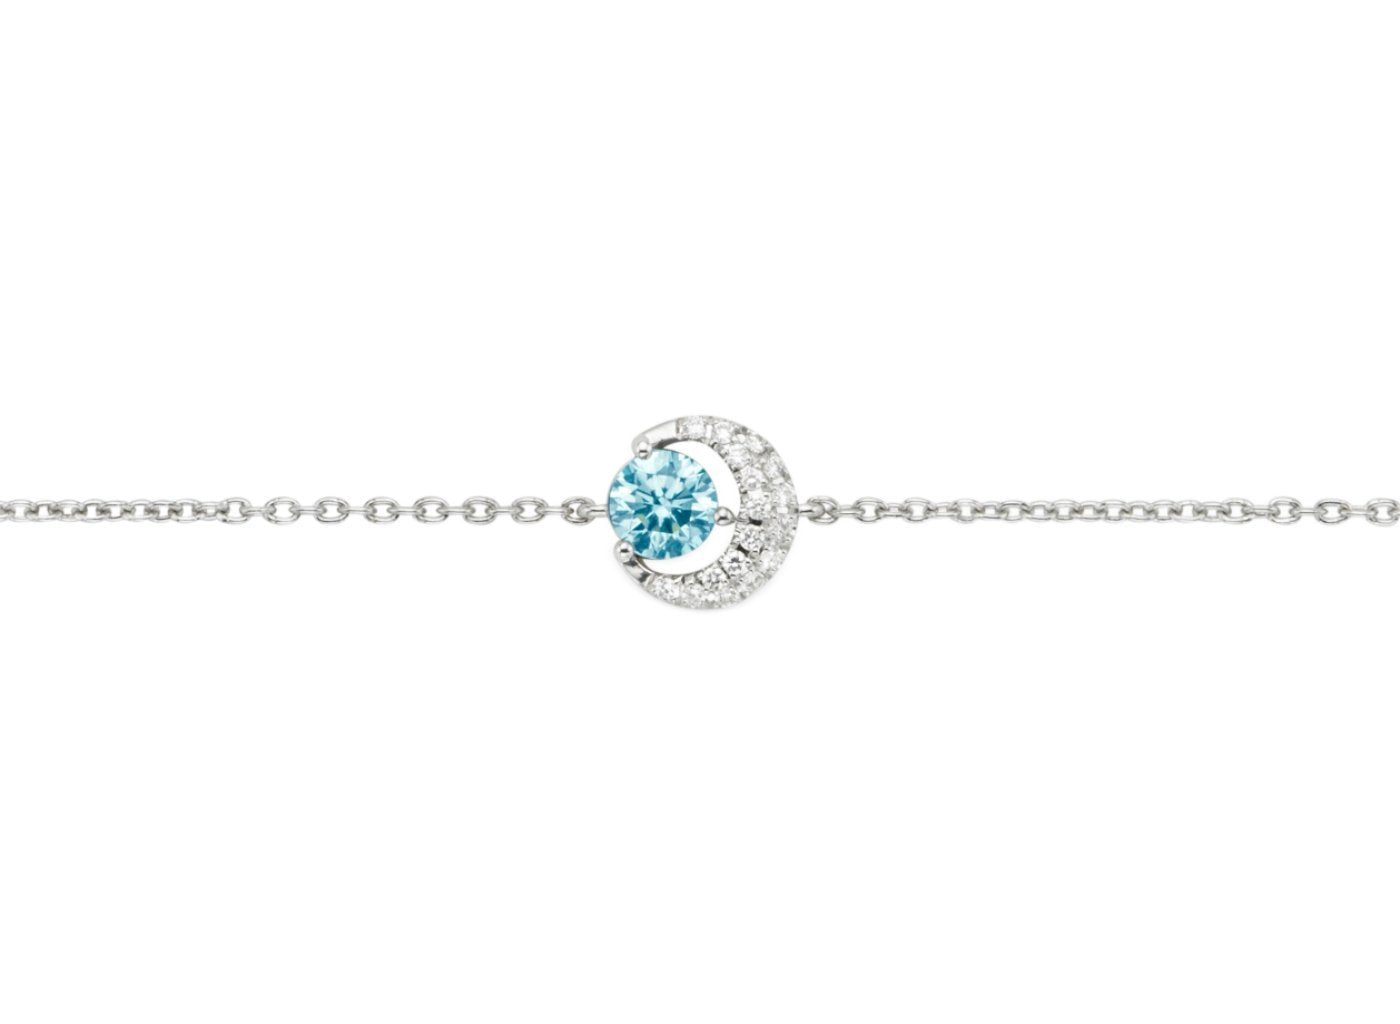 Front view of Moon 1/2 carat bracelet with blue and white diamonds